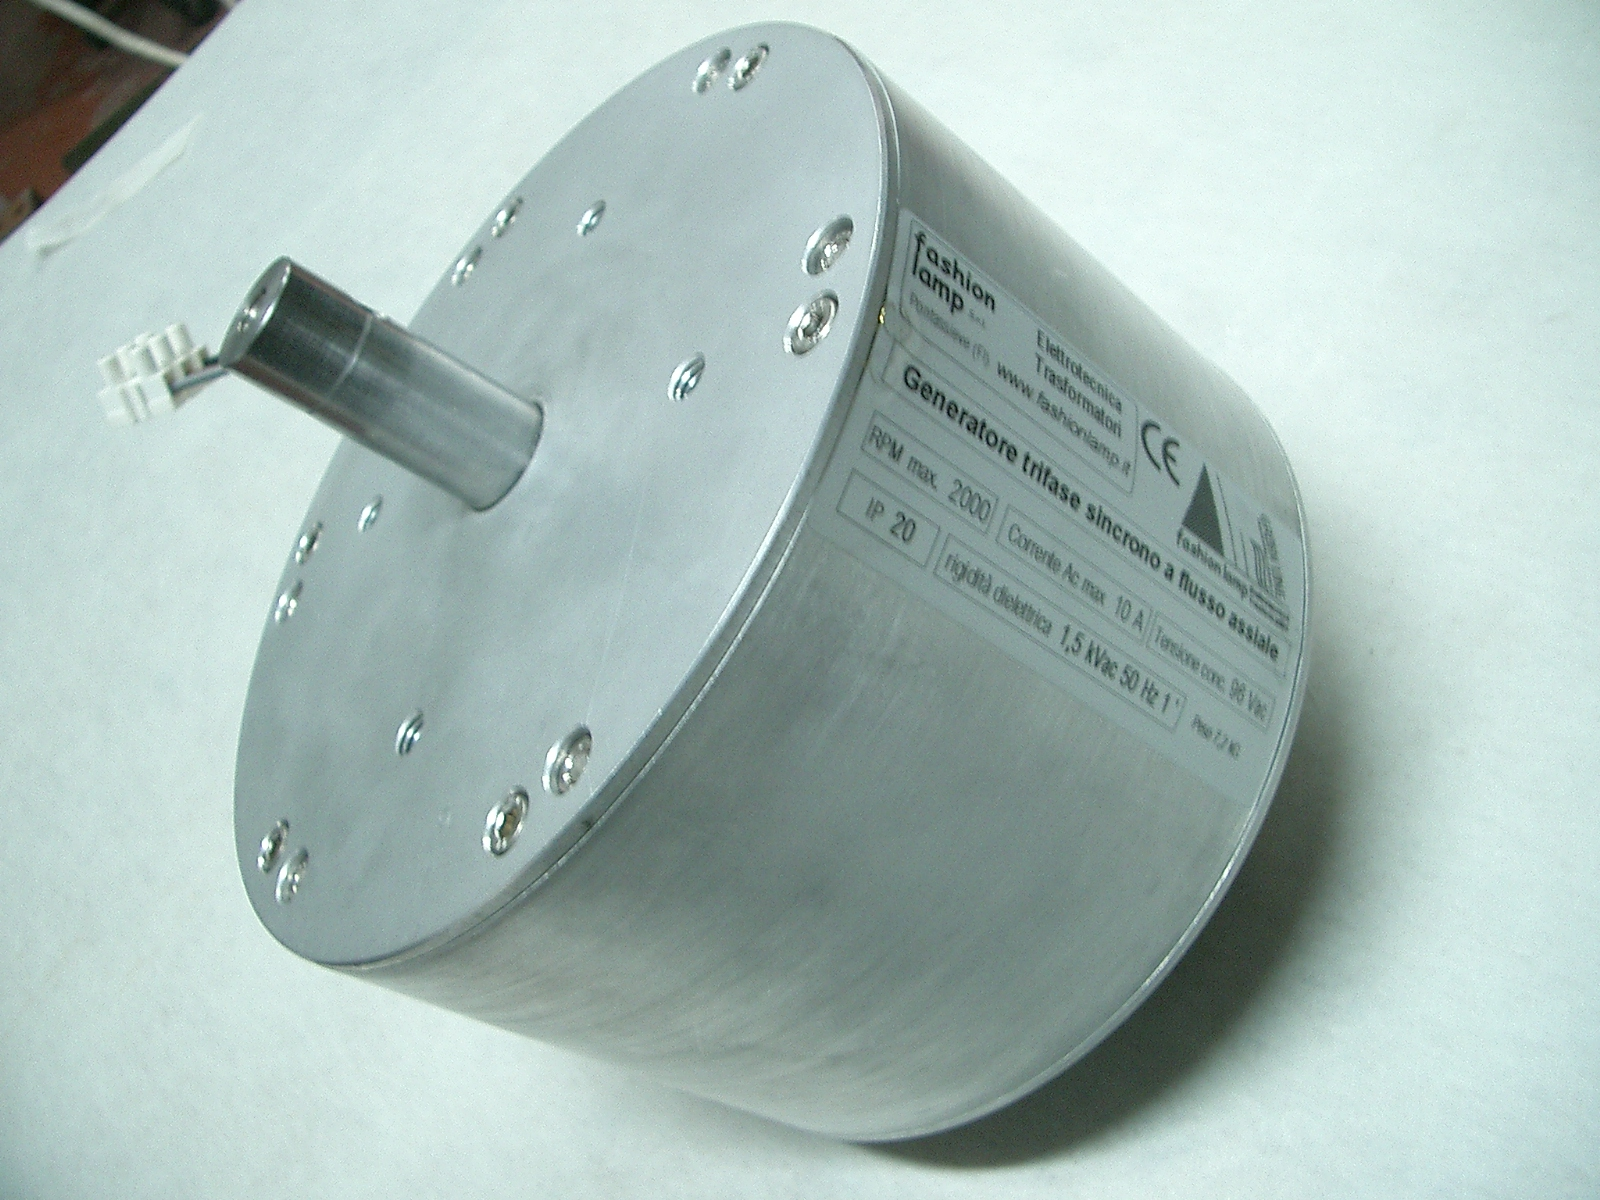 AXIAL FLUX GENERATORS/MOTORS